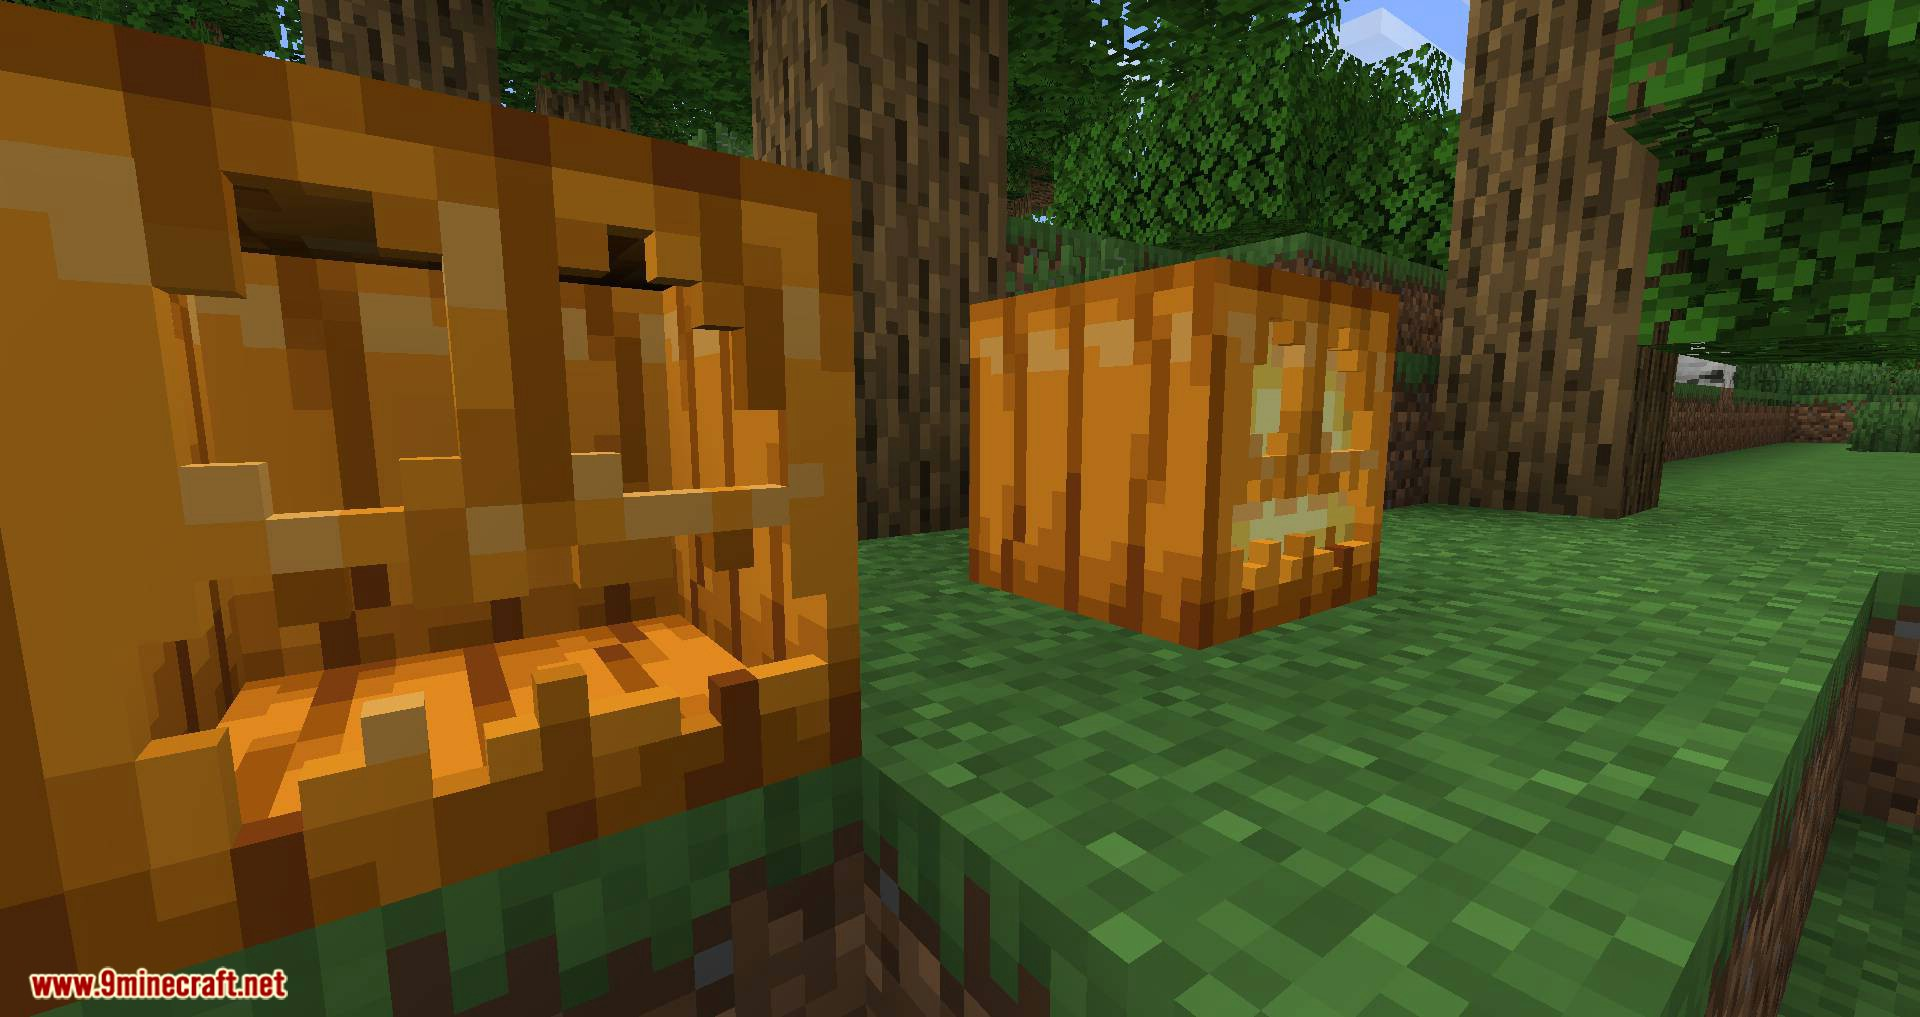 Aestheticism mod for minecraft 05